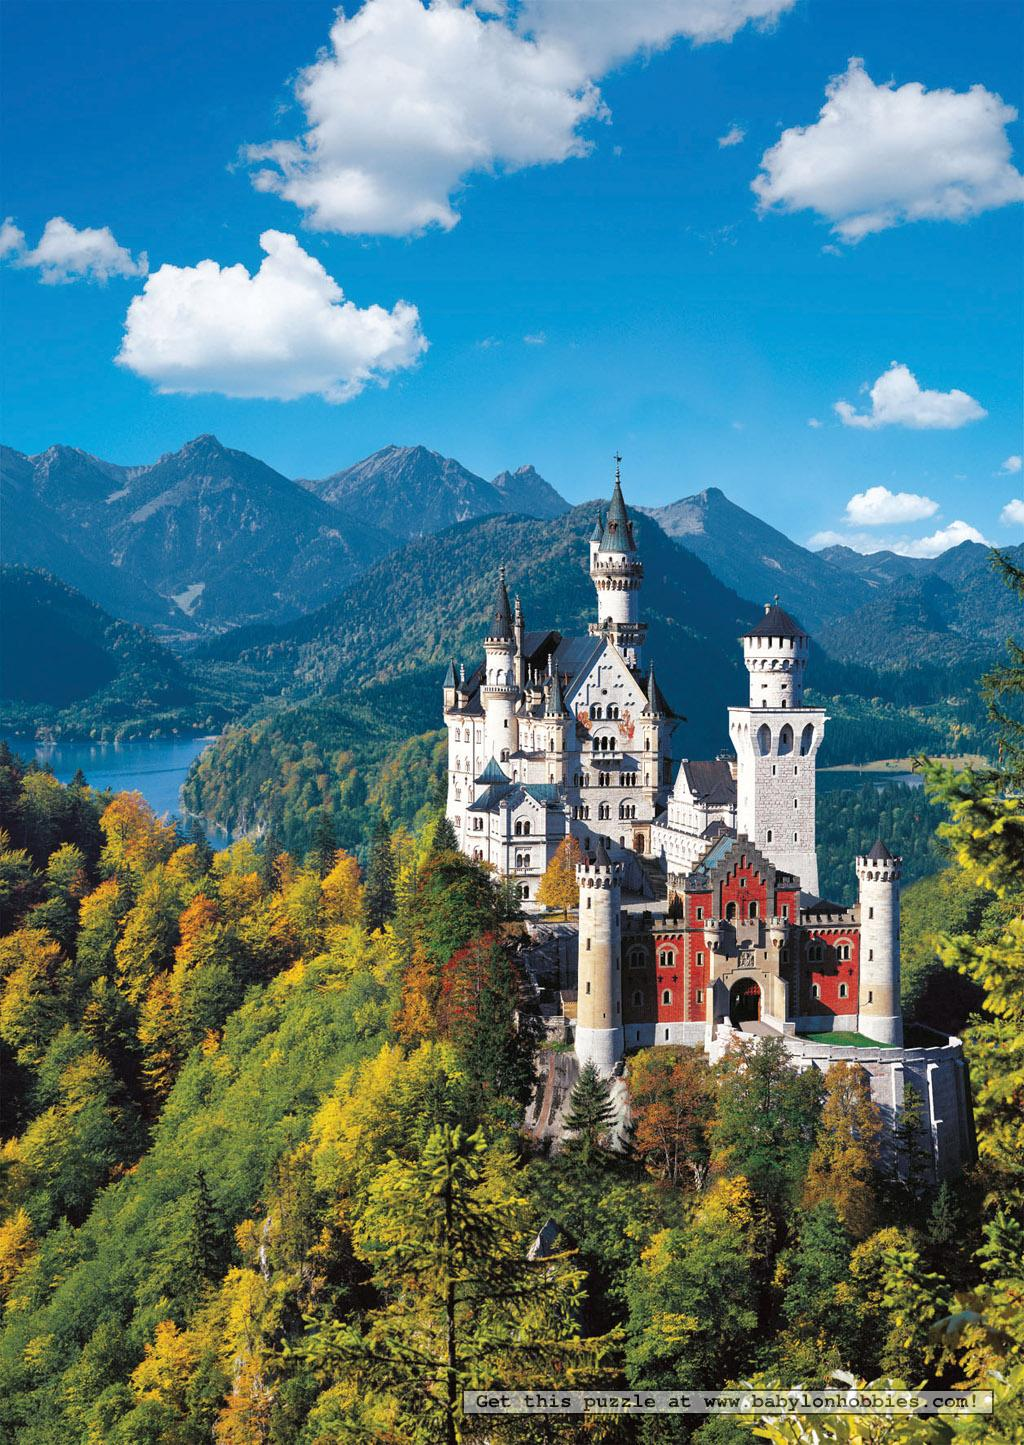 neuschwanstein castle puzzle 500pc 500 pieces jigsaw. Black Bedroom Furniture Sets. Home Design Ideas